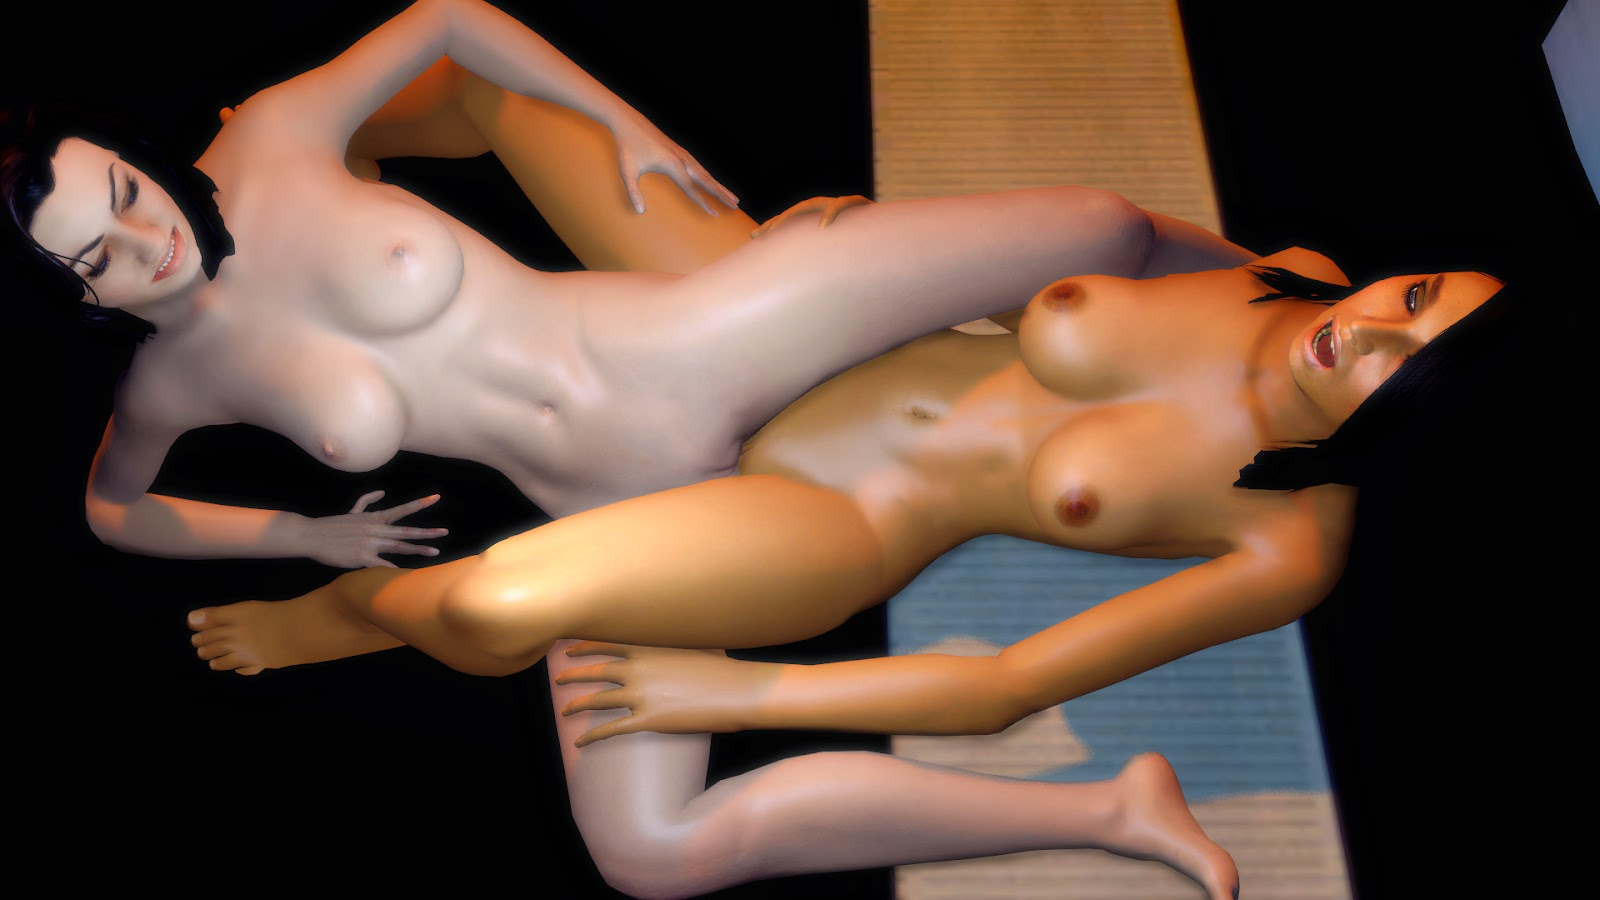 Knight rider 3d art sexual gallery